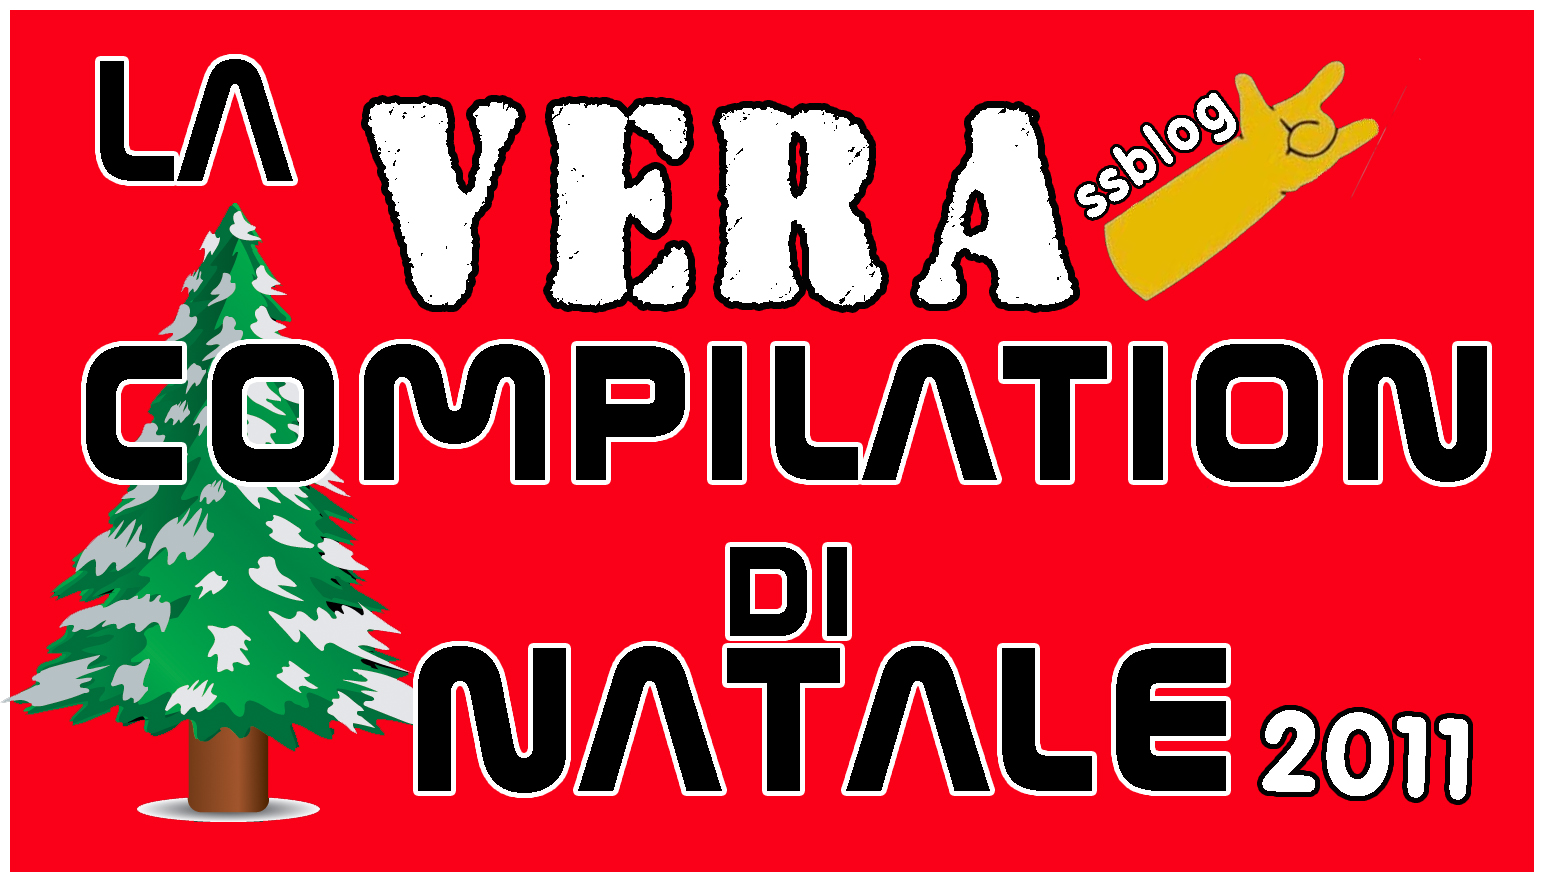 Canzoni Del Natale.Goodnewsforbadpeople Christmas Compilation Le Vere Canzoni